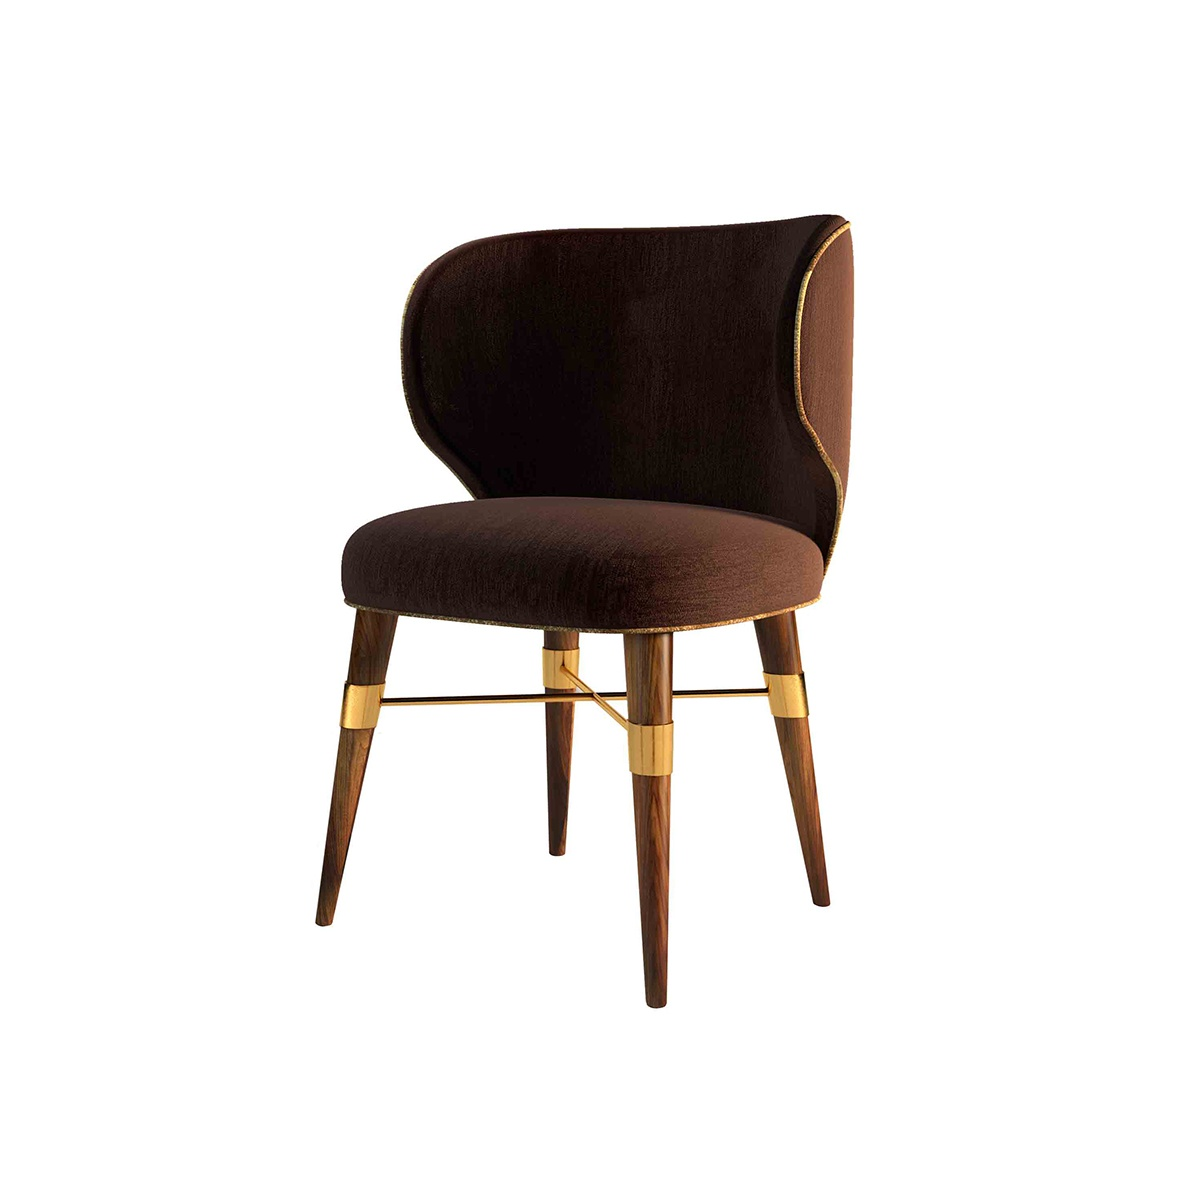 Louis velvet dining chair designer chair swanky interiors for Dining room velvet chairs